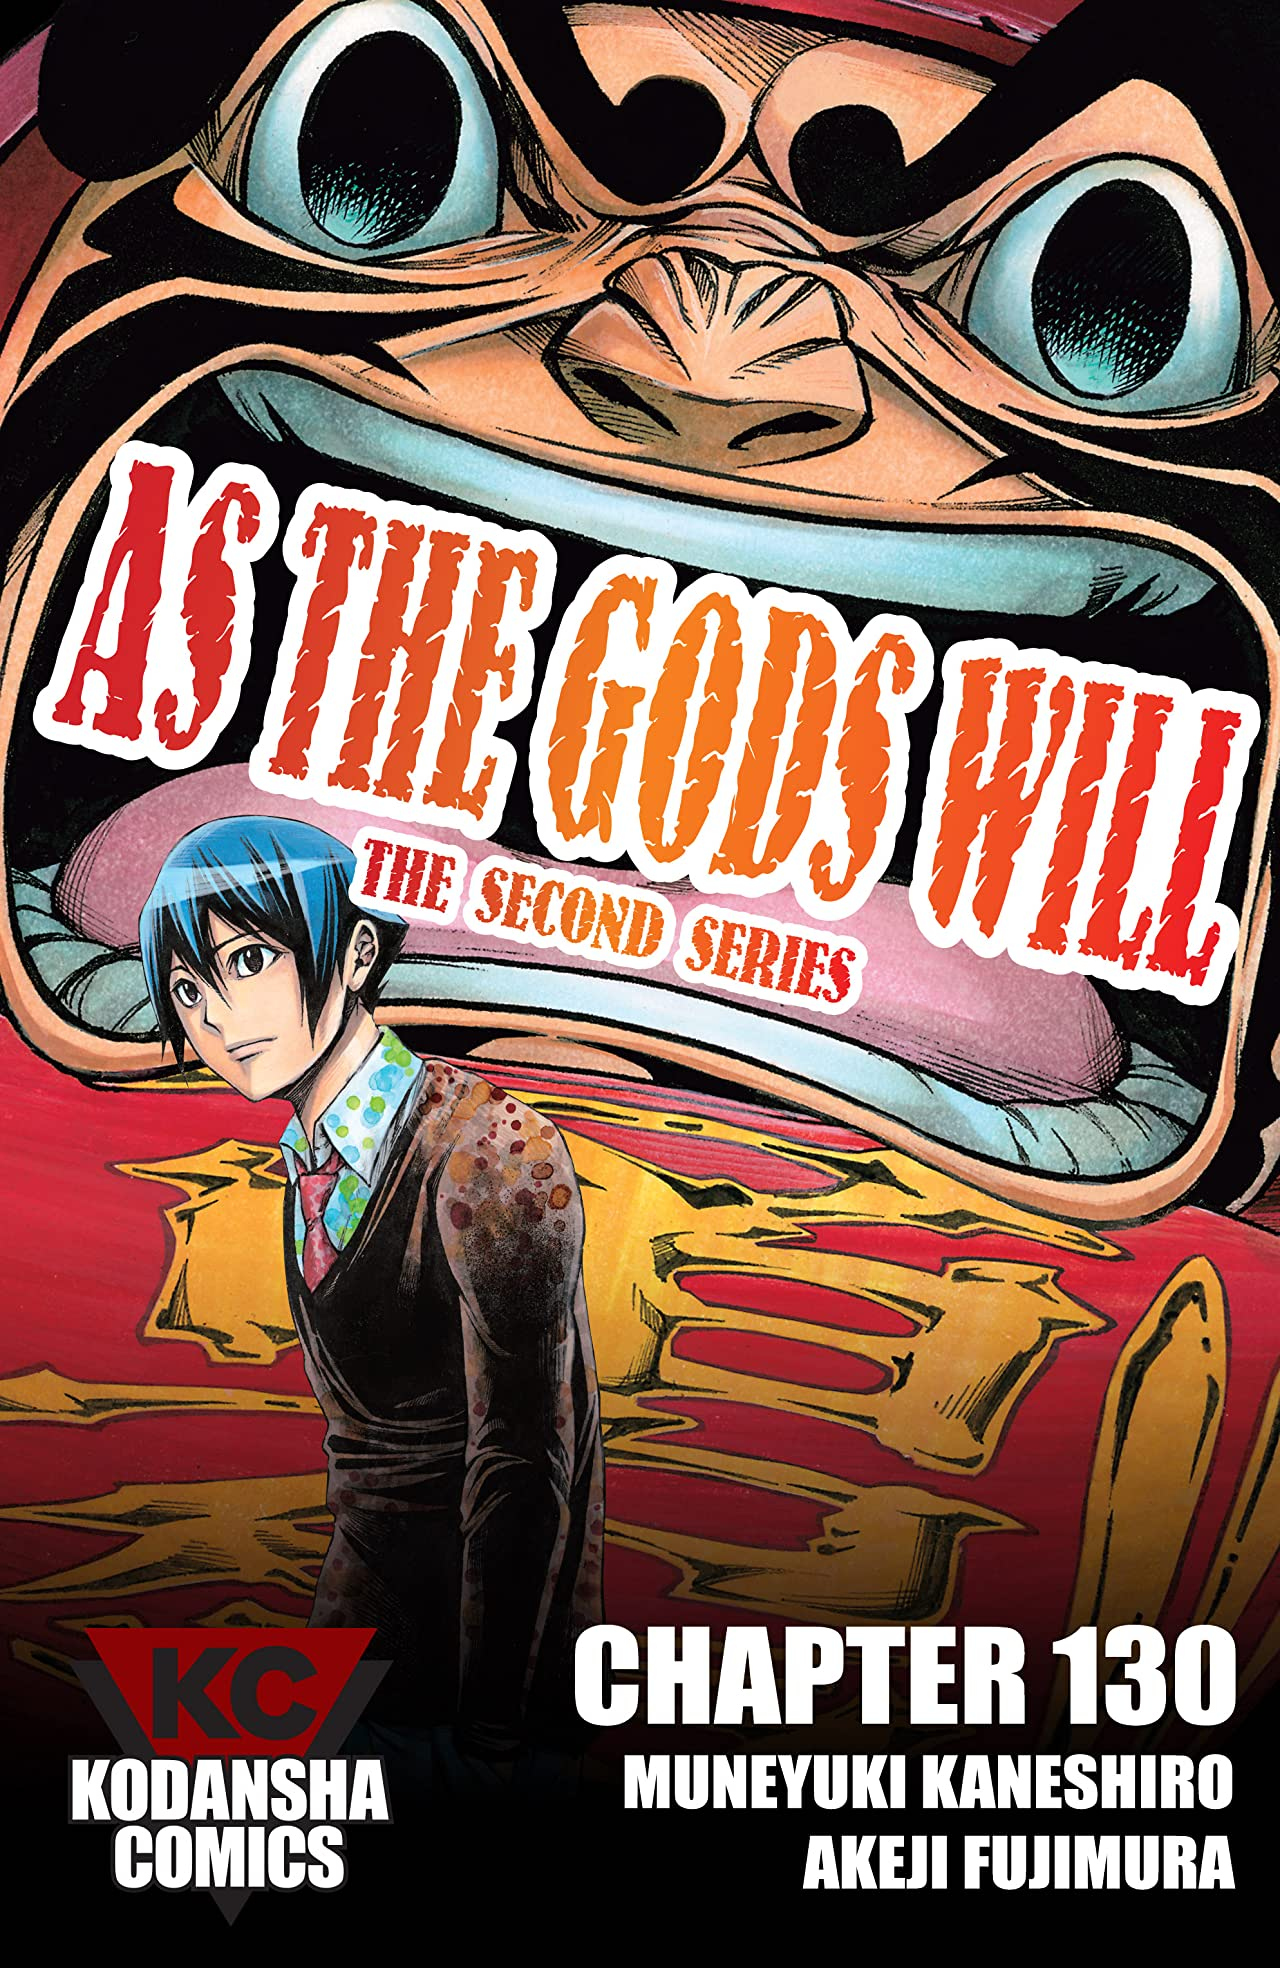 As The Gods Will: The Second Series #130